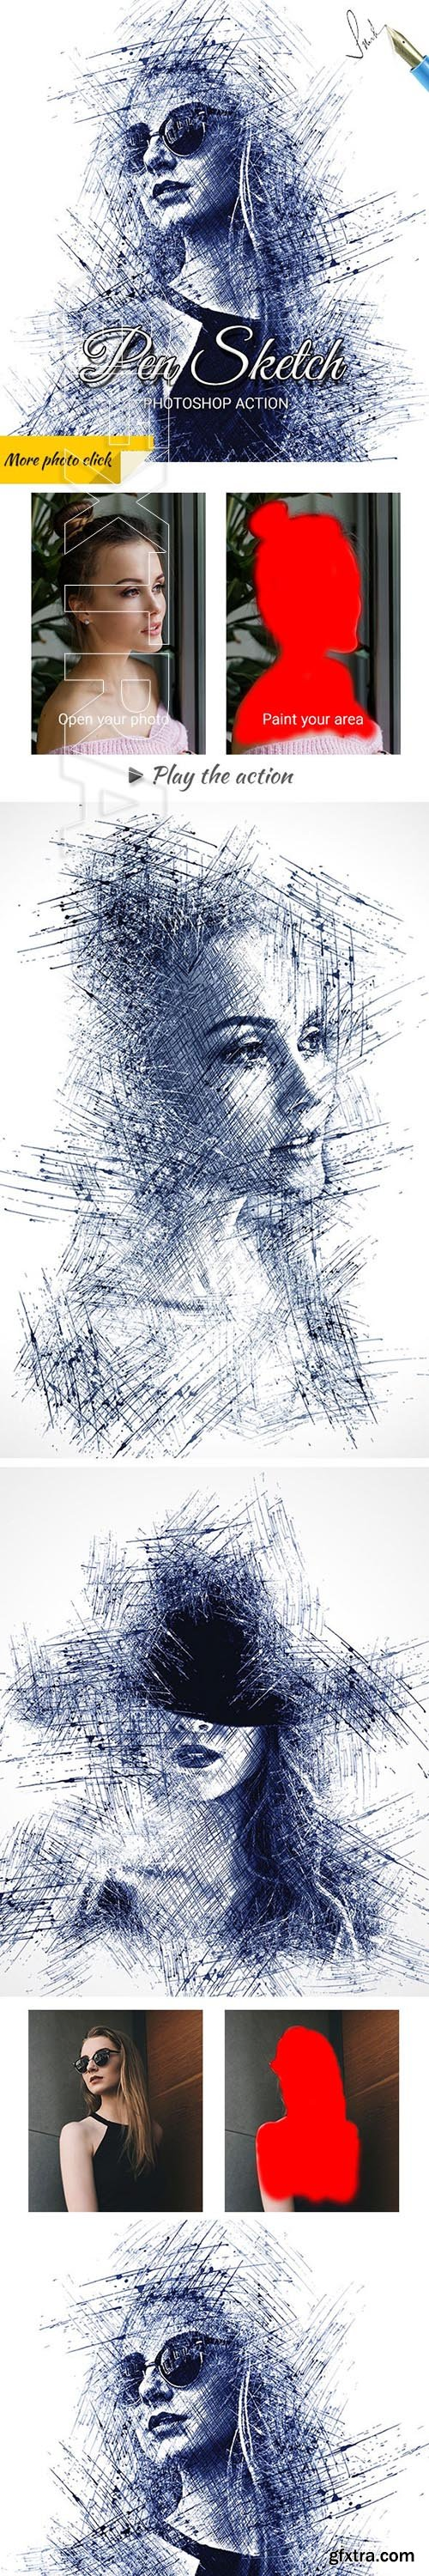 GraphicRiver - Pen Sketch Photoshop Action 25003520